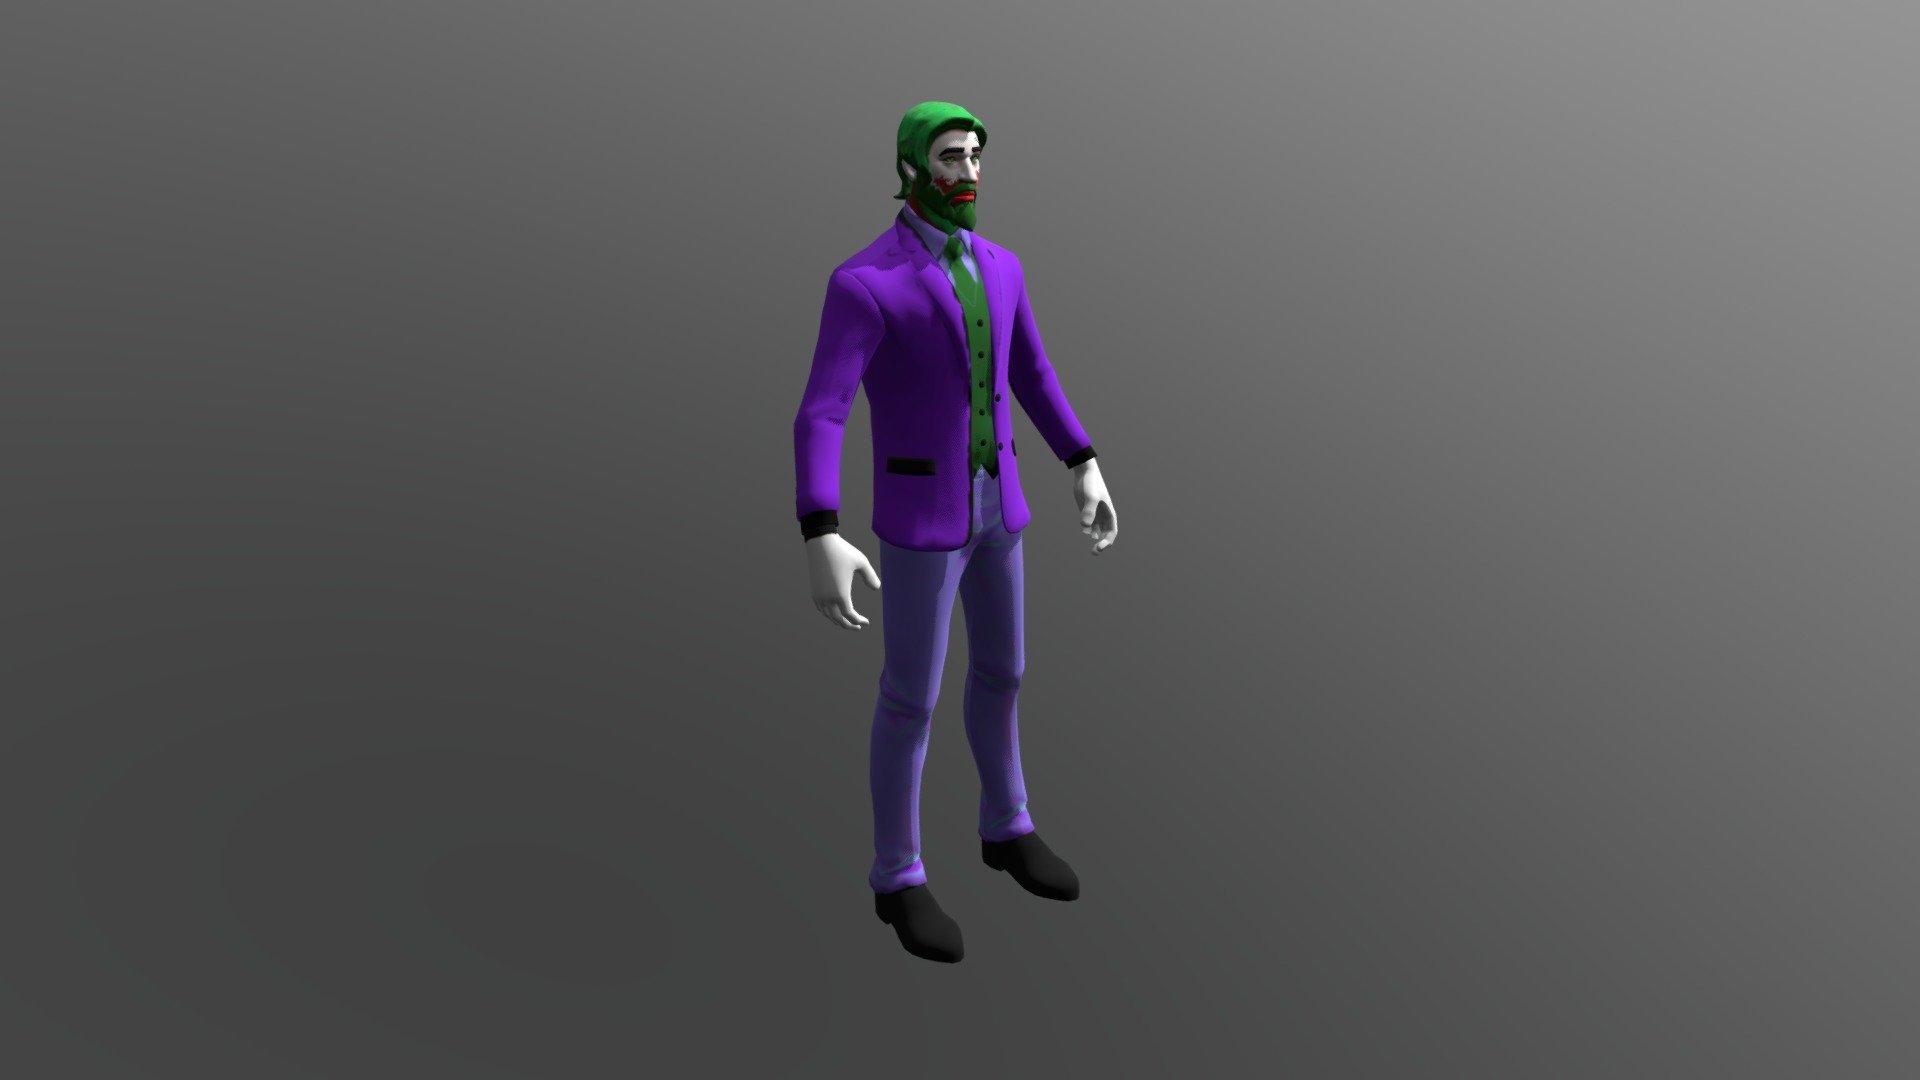 Fortnite Joker Wick Halloween John Wick 3d Model By Jabbeats Jbamerarmy Ae9757c Sketchfab Glitches giving fortnite players a different fov are nothing new for the game, however, a new one associated with the sneaky snowman item, which lets players. fortnite joker wick halloween john